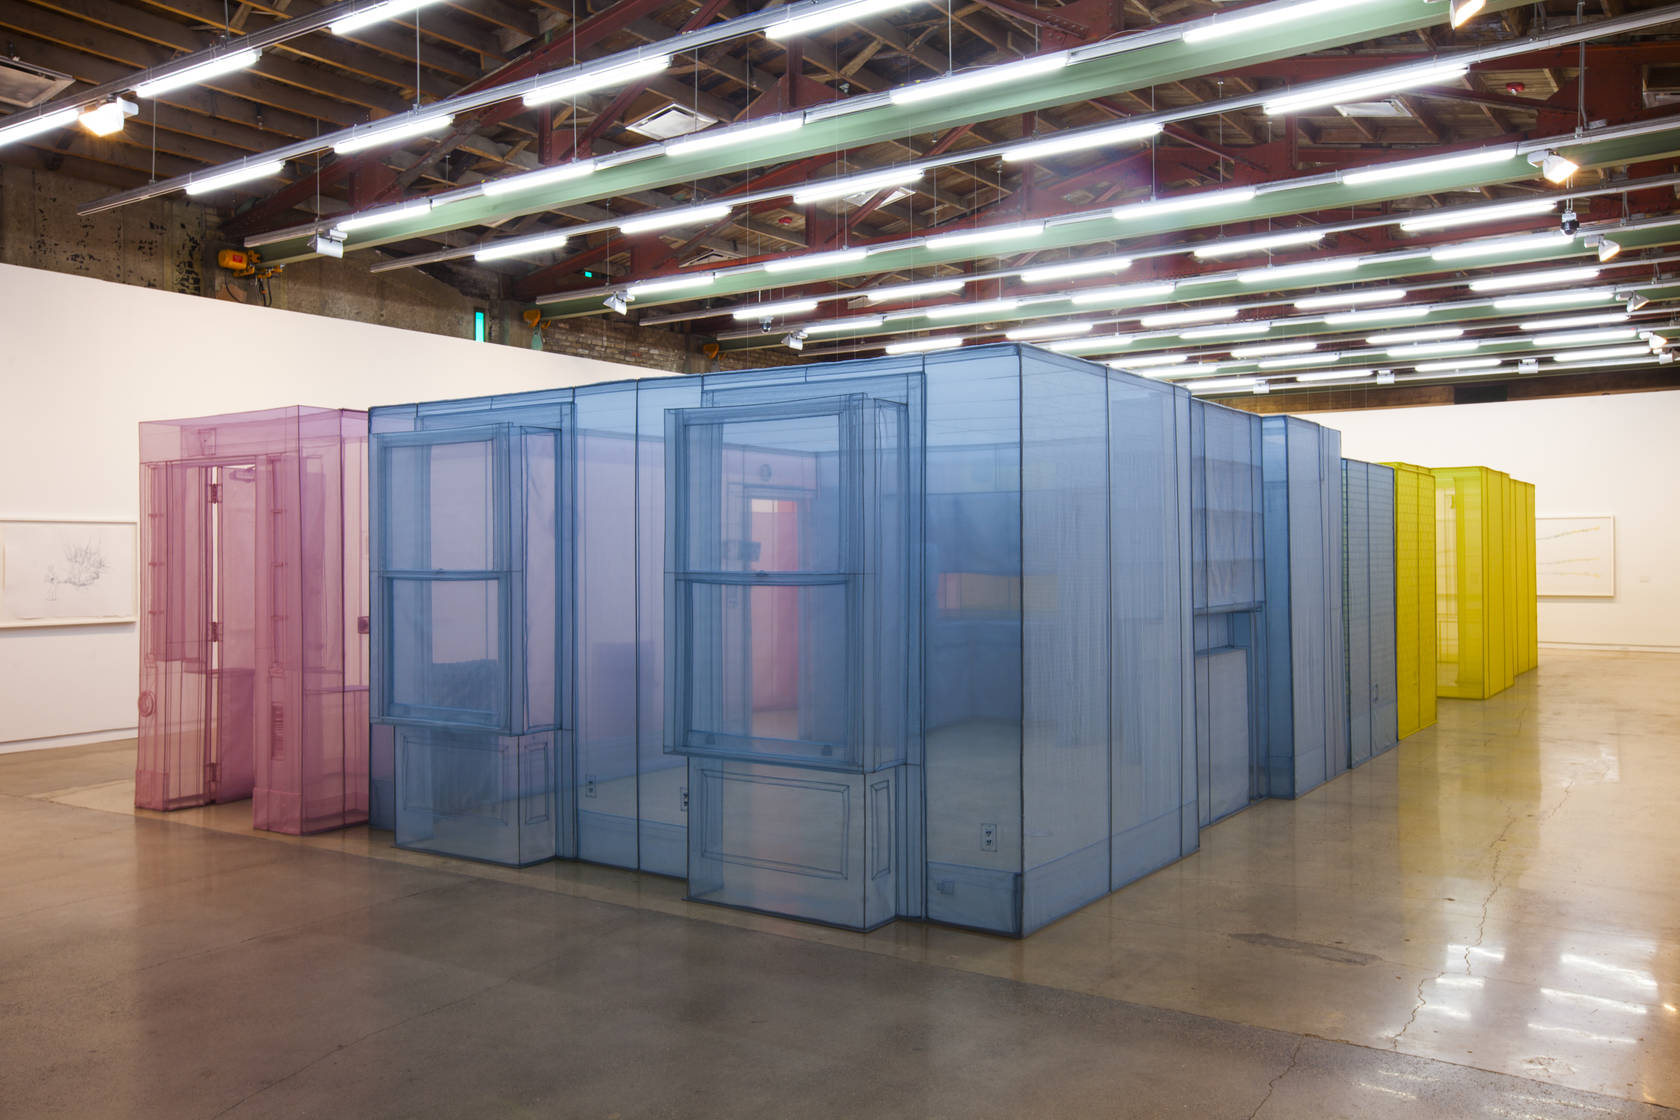 Do Ho Suh Another Innovative South Korean Artist Lazer